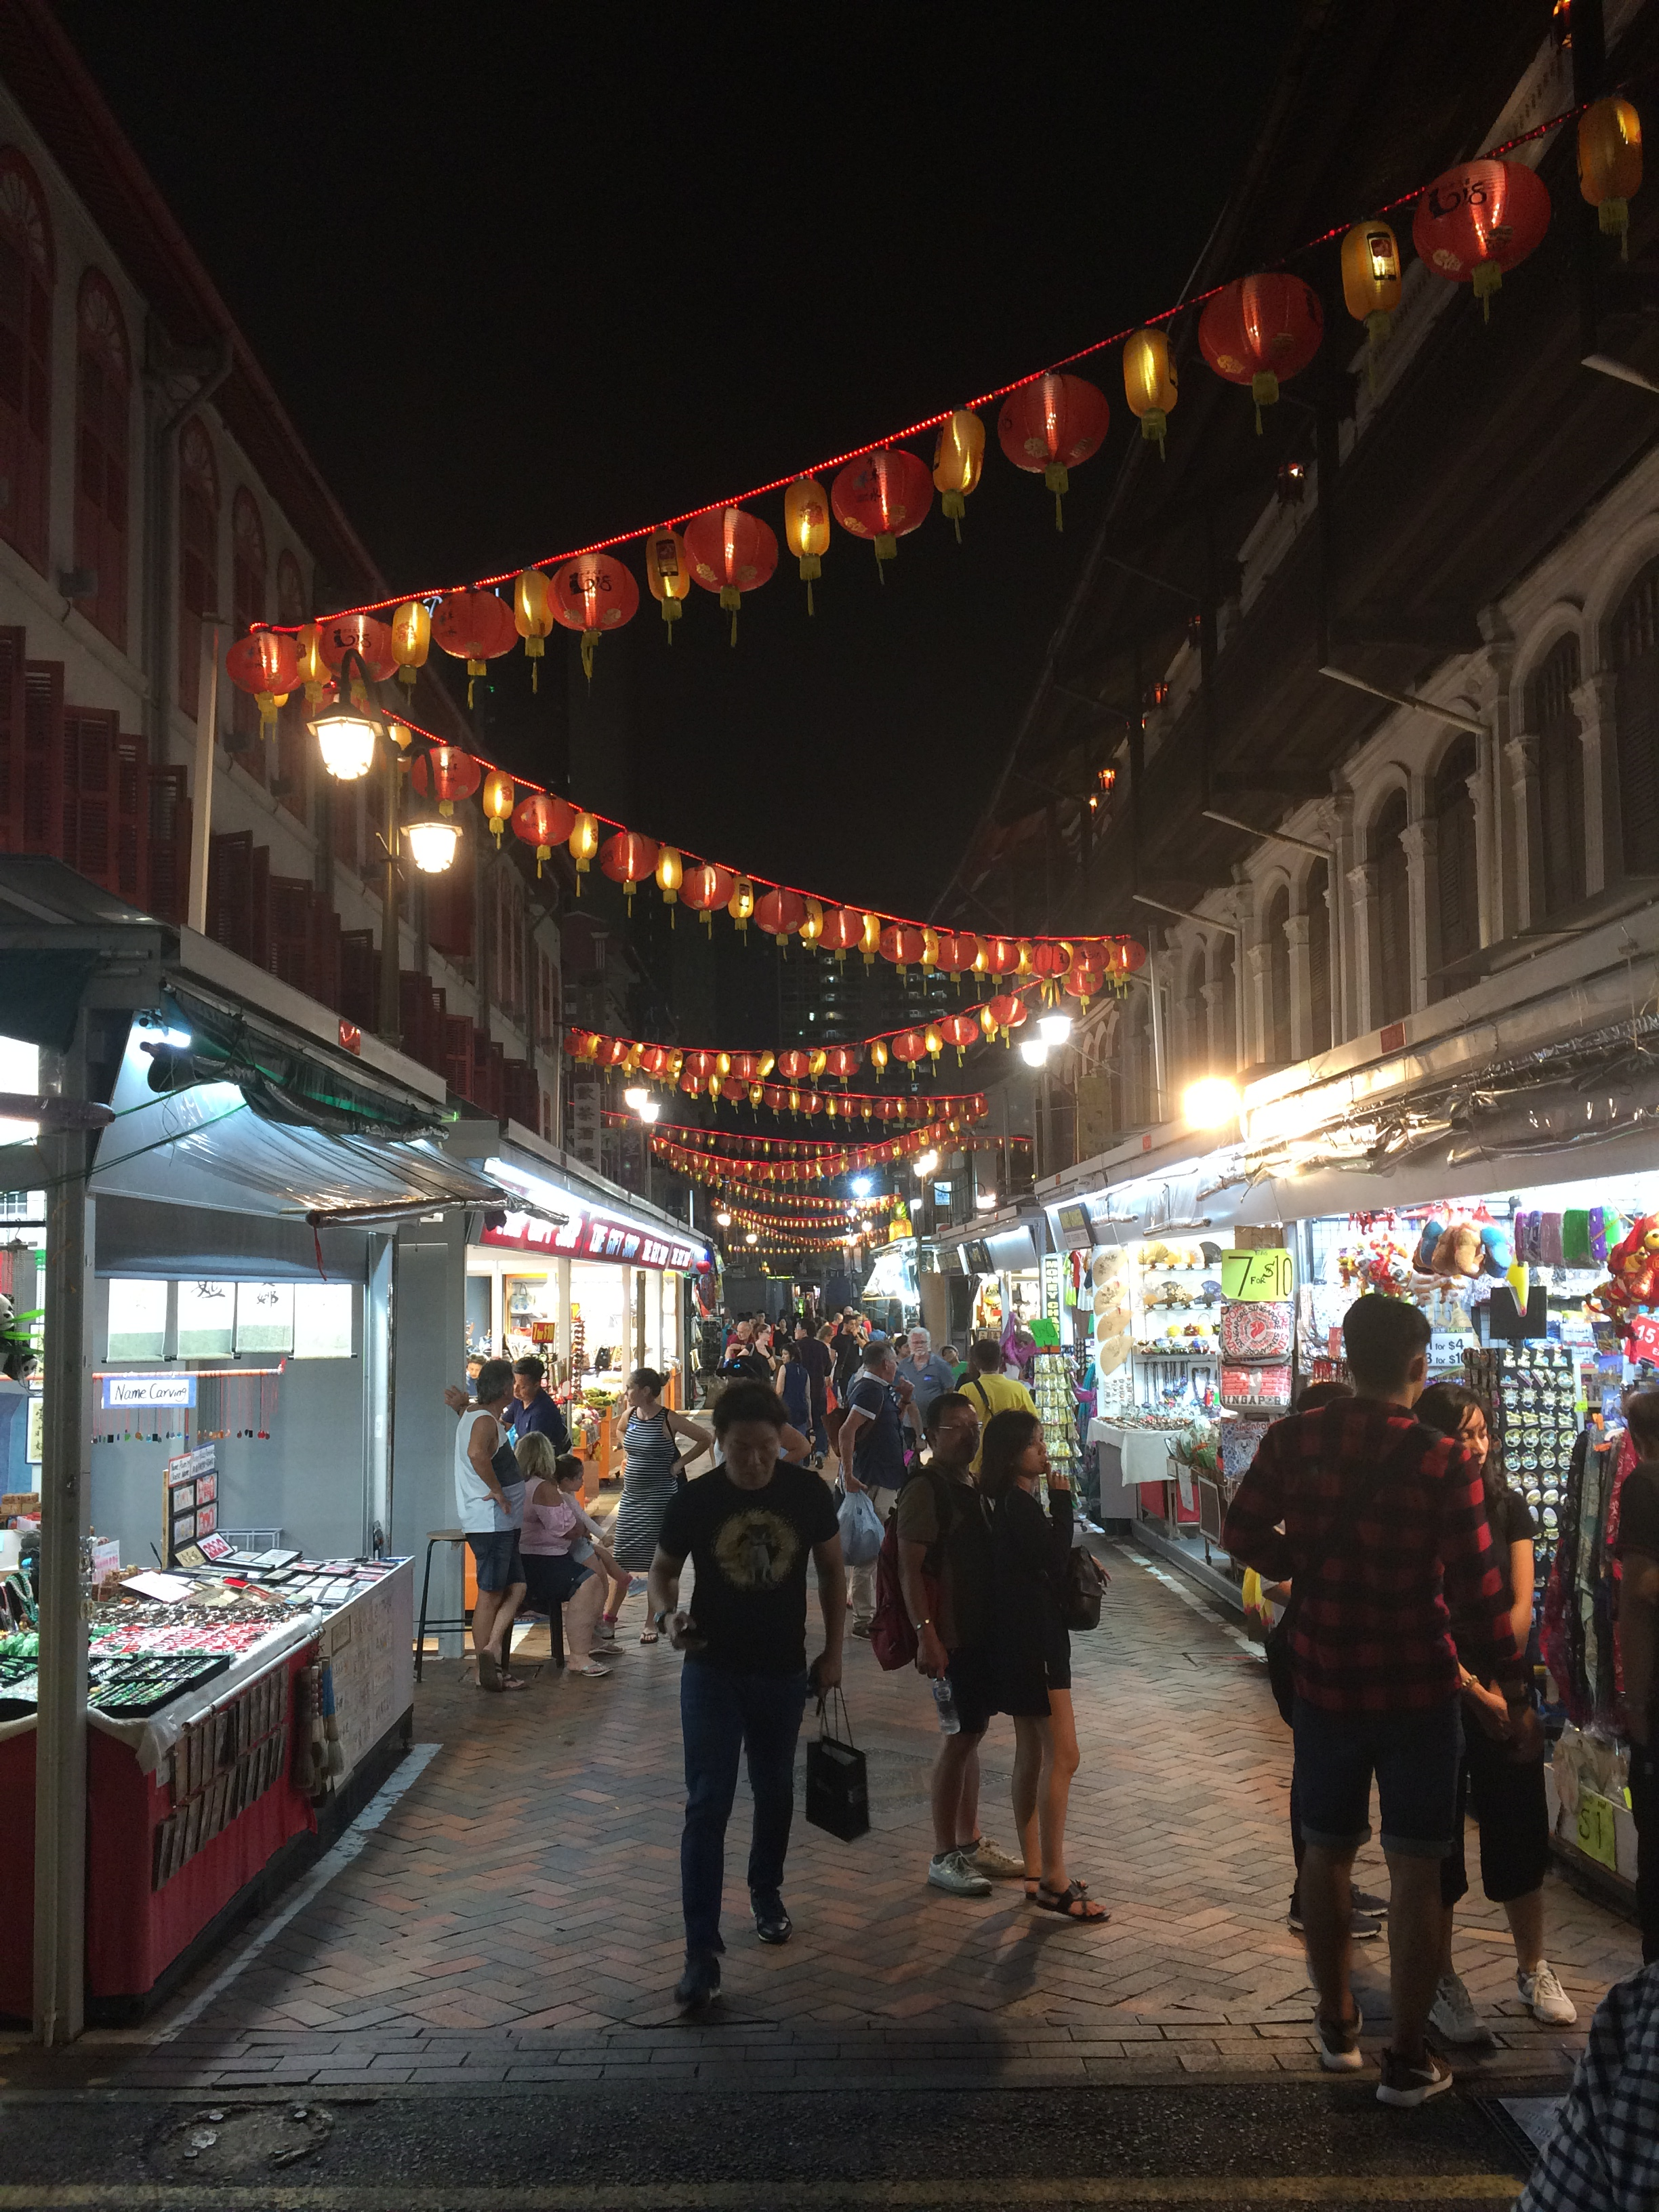 Singapore at Its Best - 3 Reasons to Visit